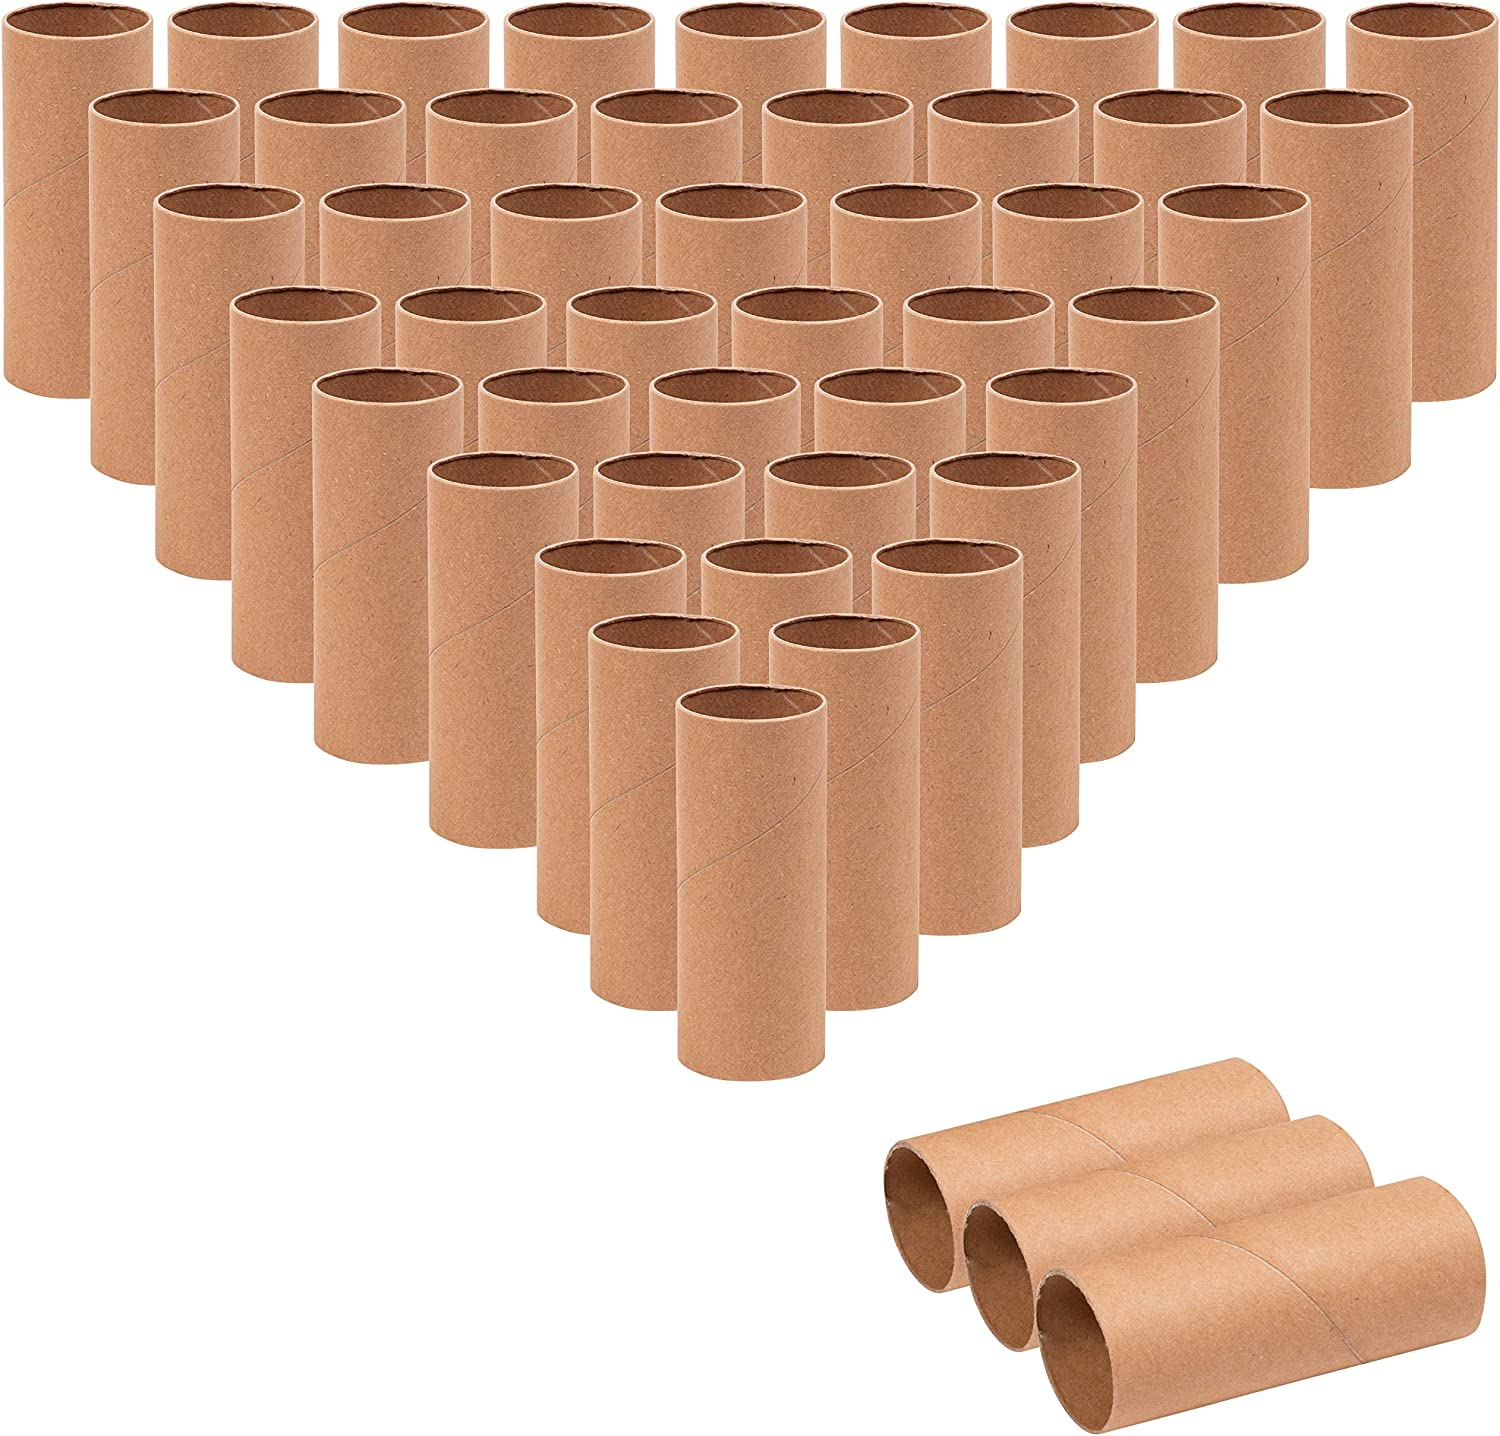 Supvox 30pcs Sturdy Craft Rolls Colorful Cardboard Tubes for DIY Arts Crafts Creative Paintings Drawings Handmade Classroom Projects Mixed Color